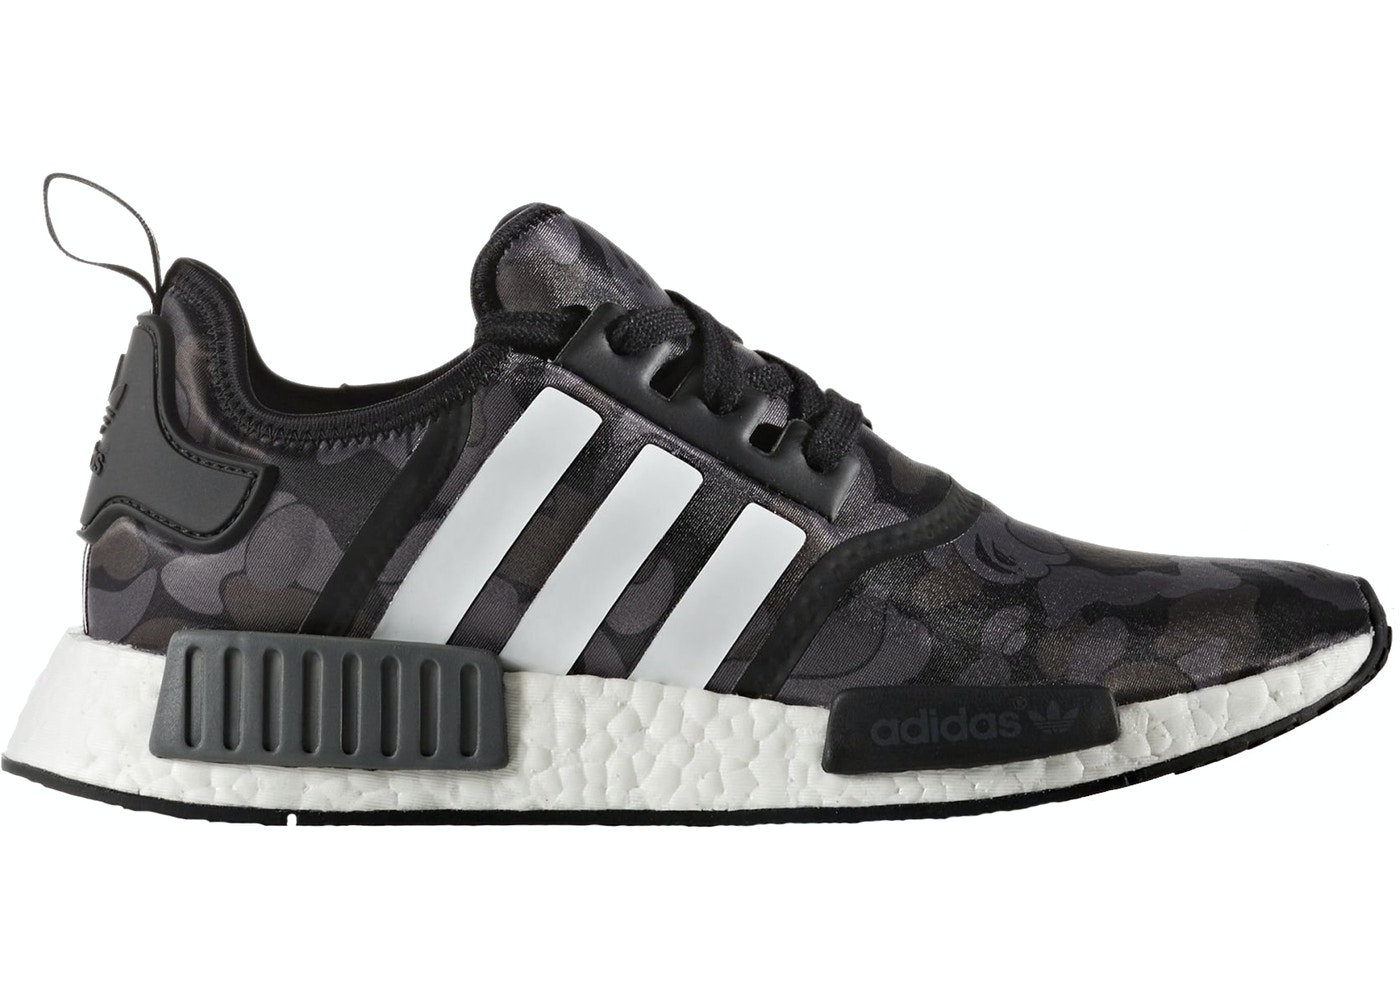 new product 3d4f6 3bb26 adidas NMD R1 Bape Black Camo